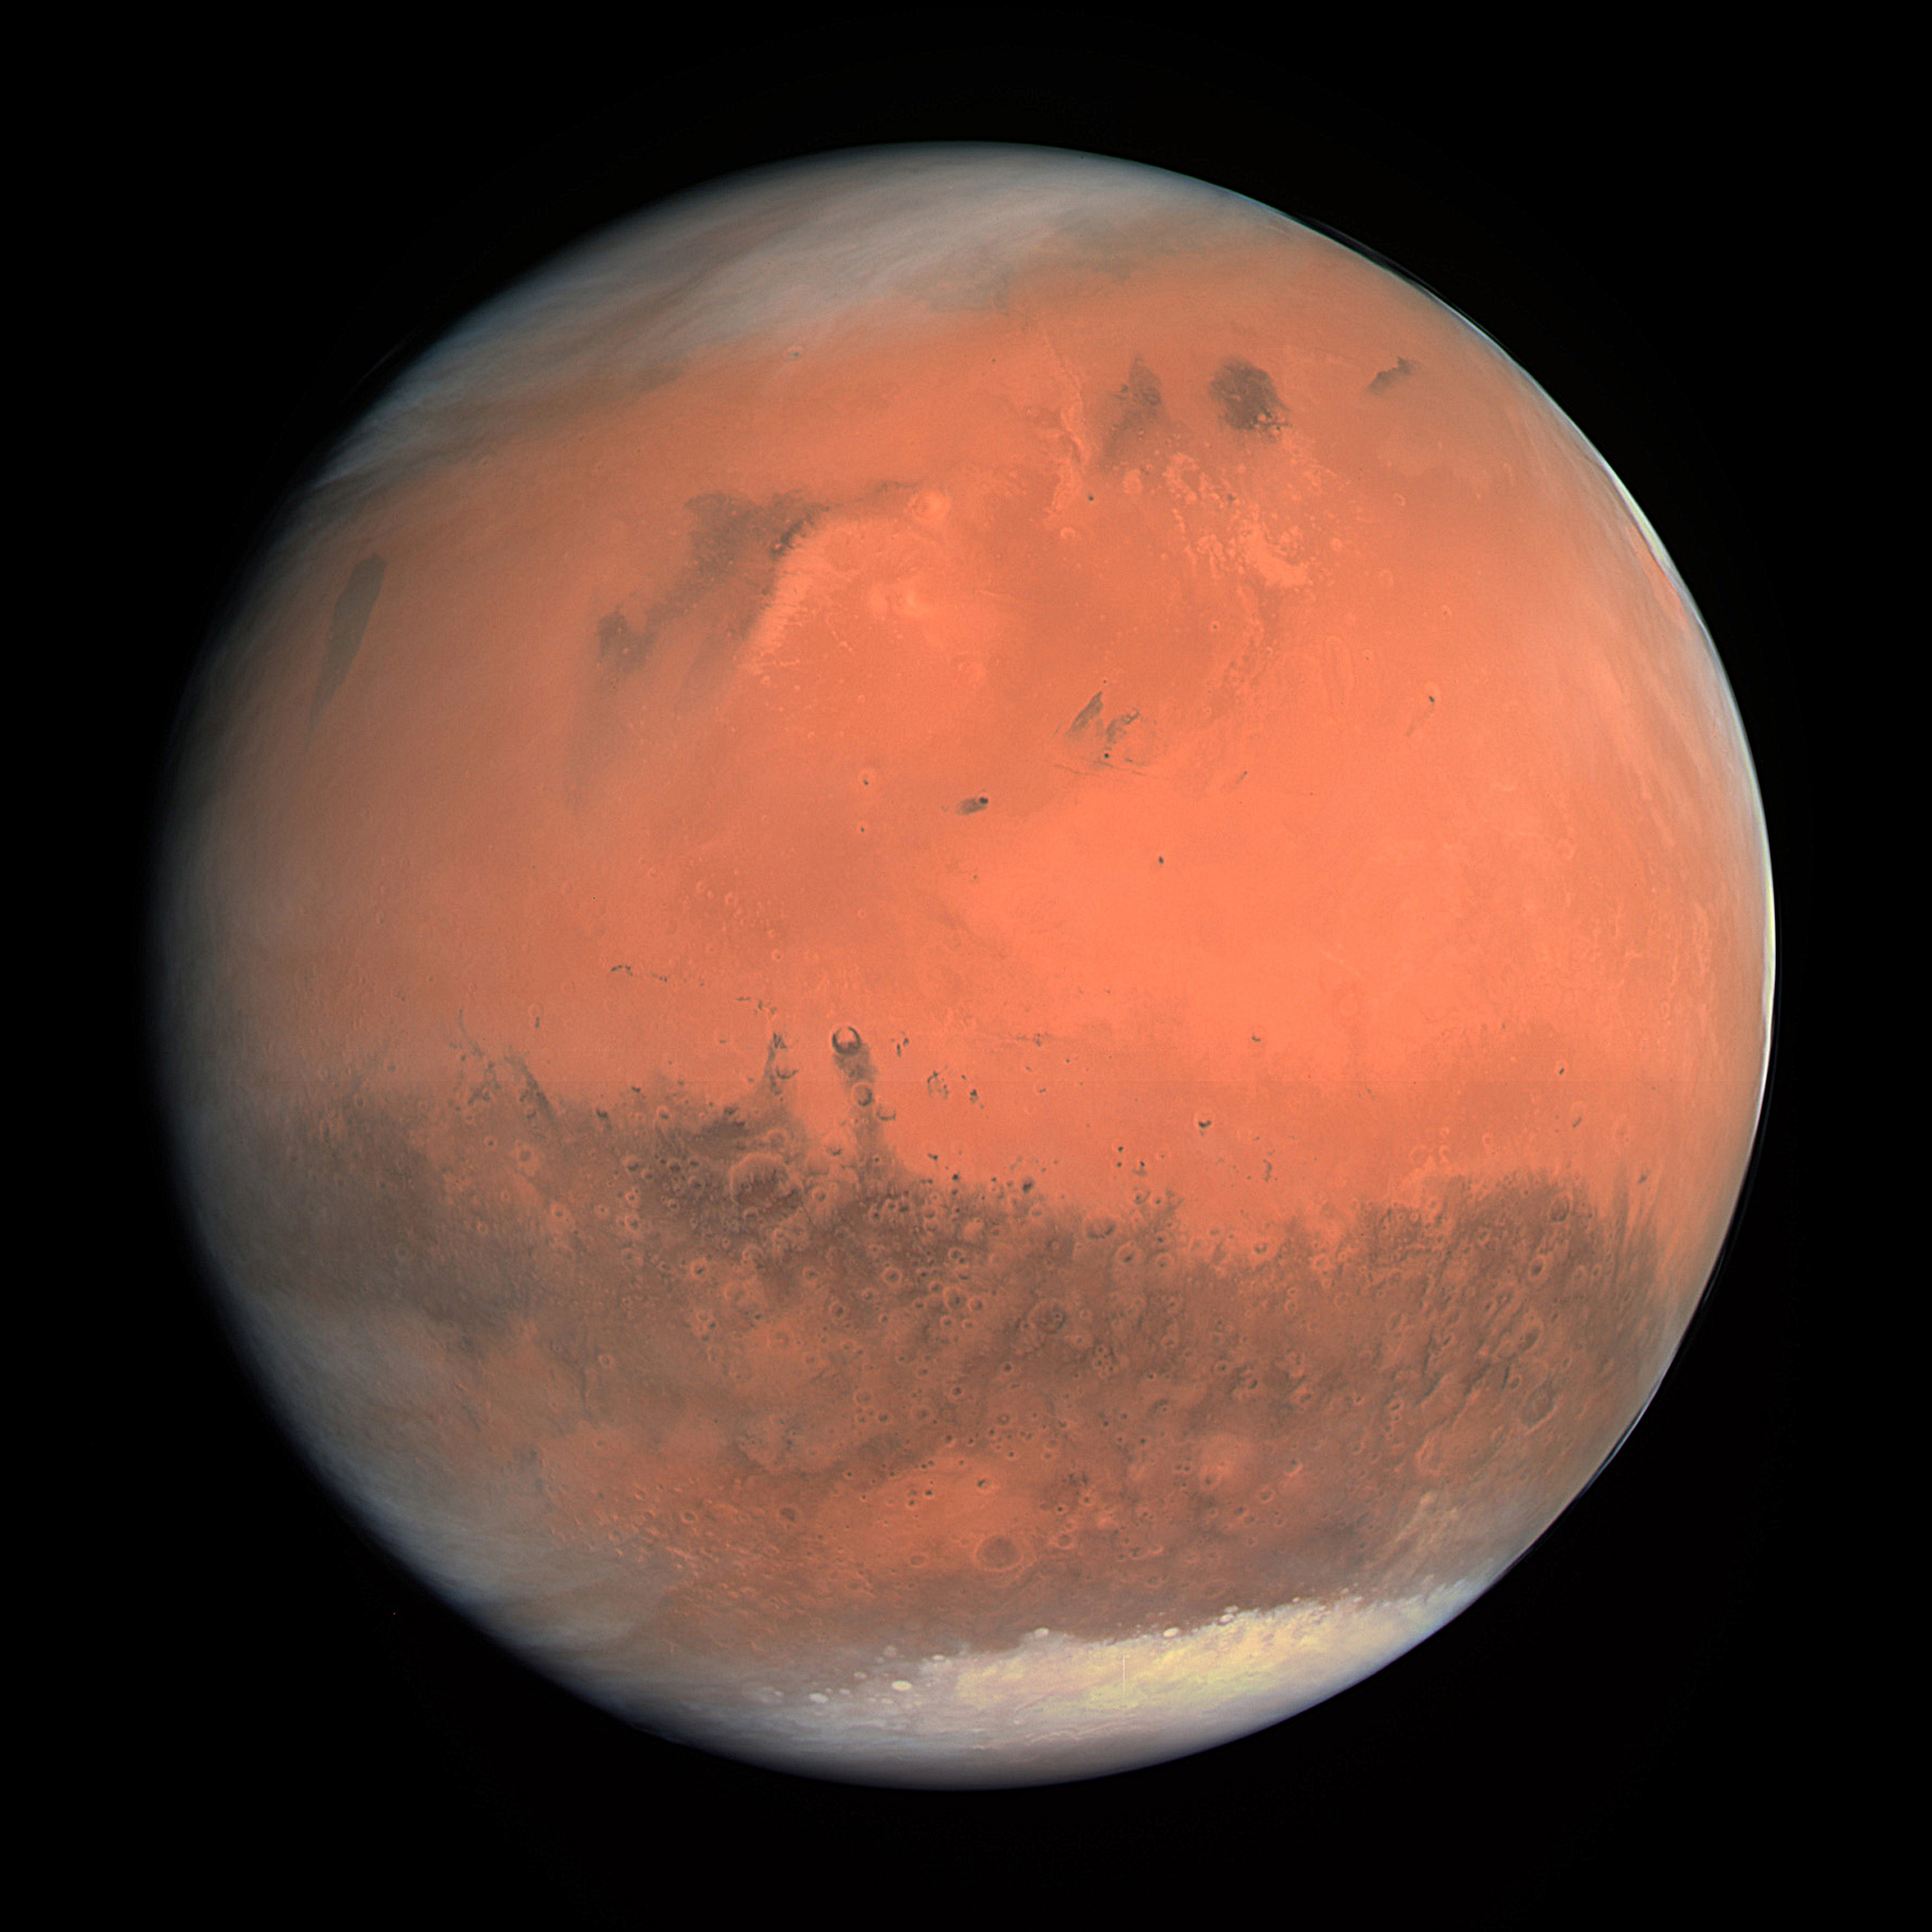 Drawn planet mars Mars and valleys canyons